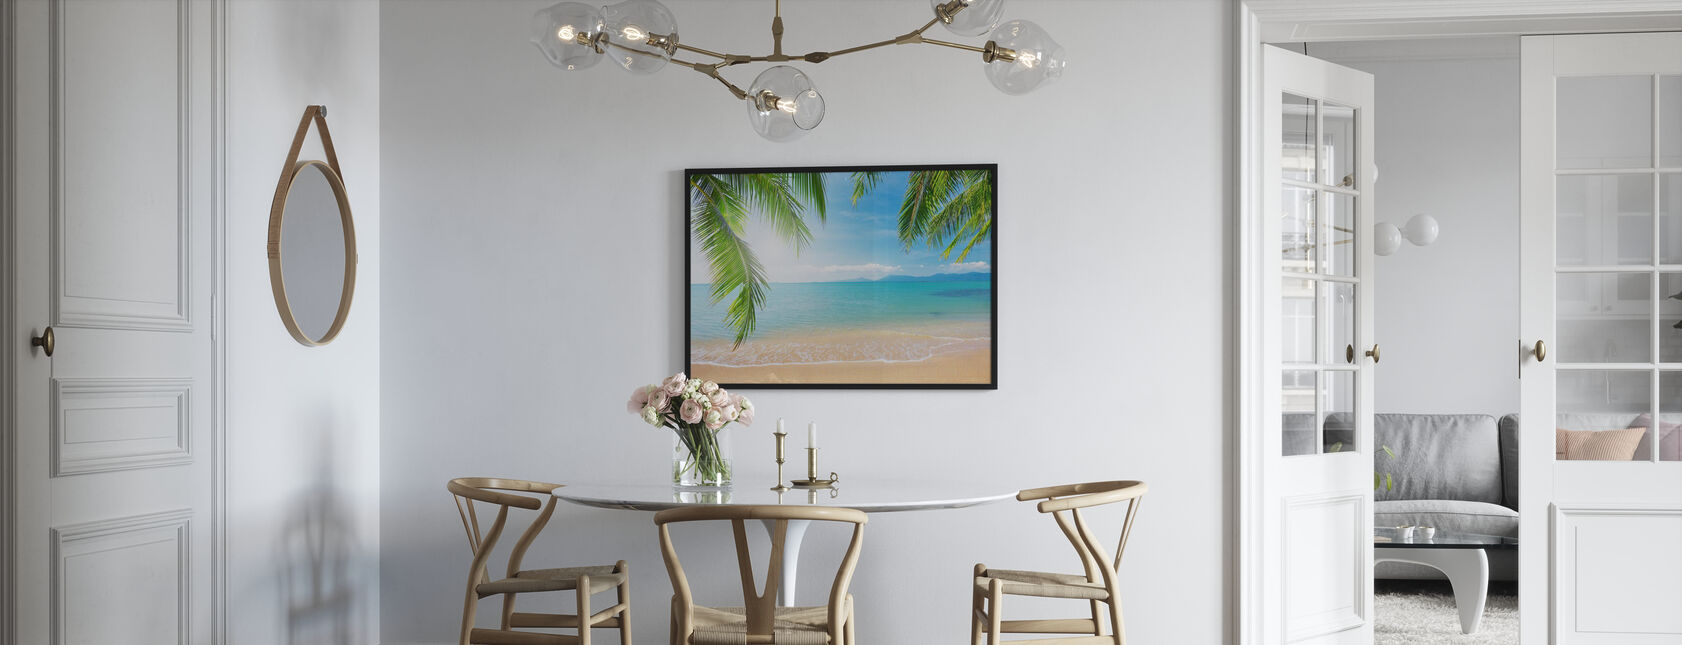 Tropical View from under a Palm Tree - Poster - Kitchen